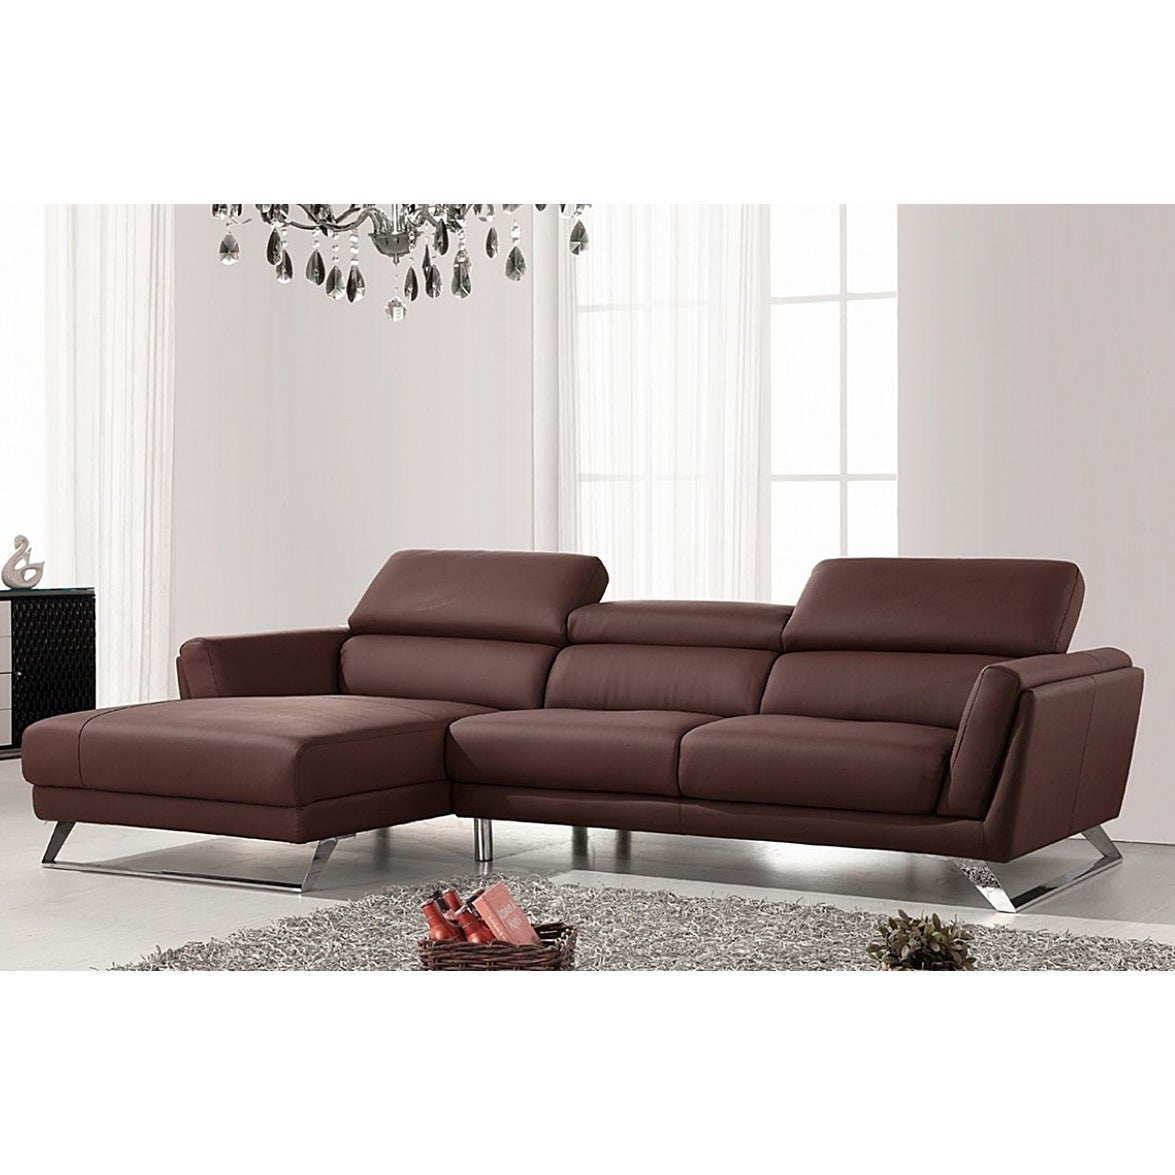 Shop Waldorf Modern Brown Leather L Shaped Sofa With Adjustable